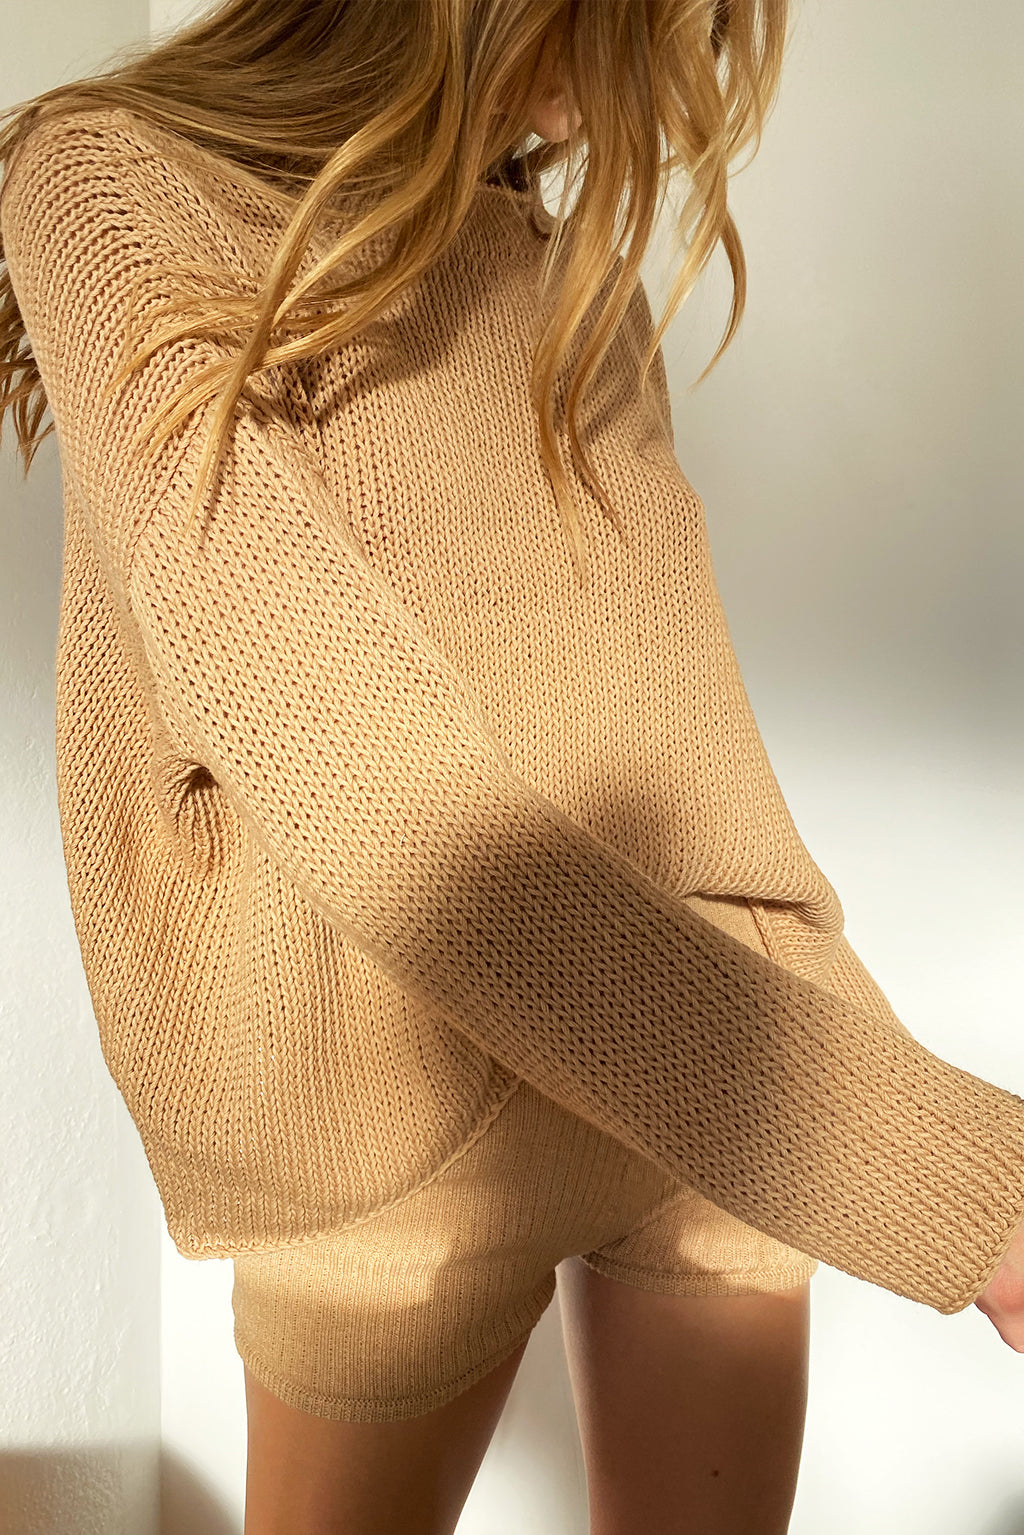 Organic Knit Sweater - Tan